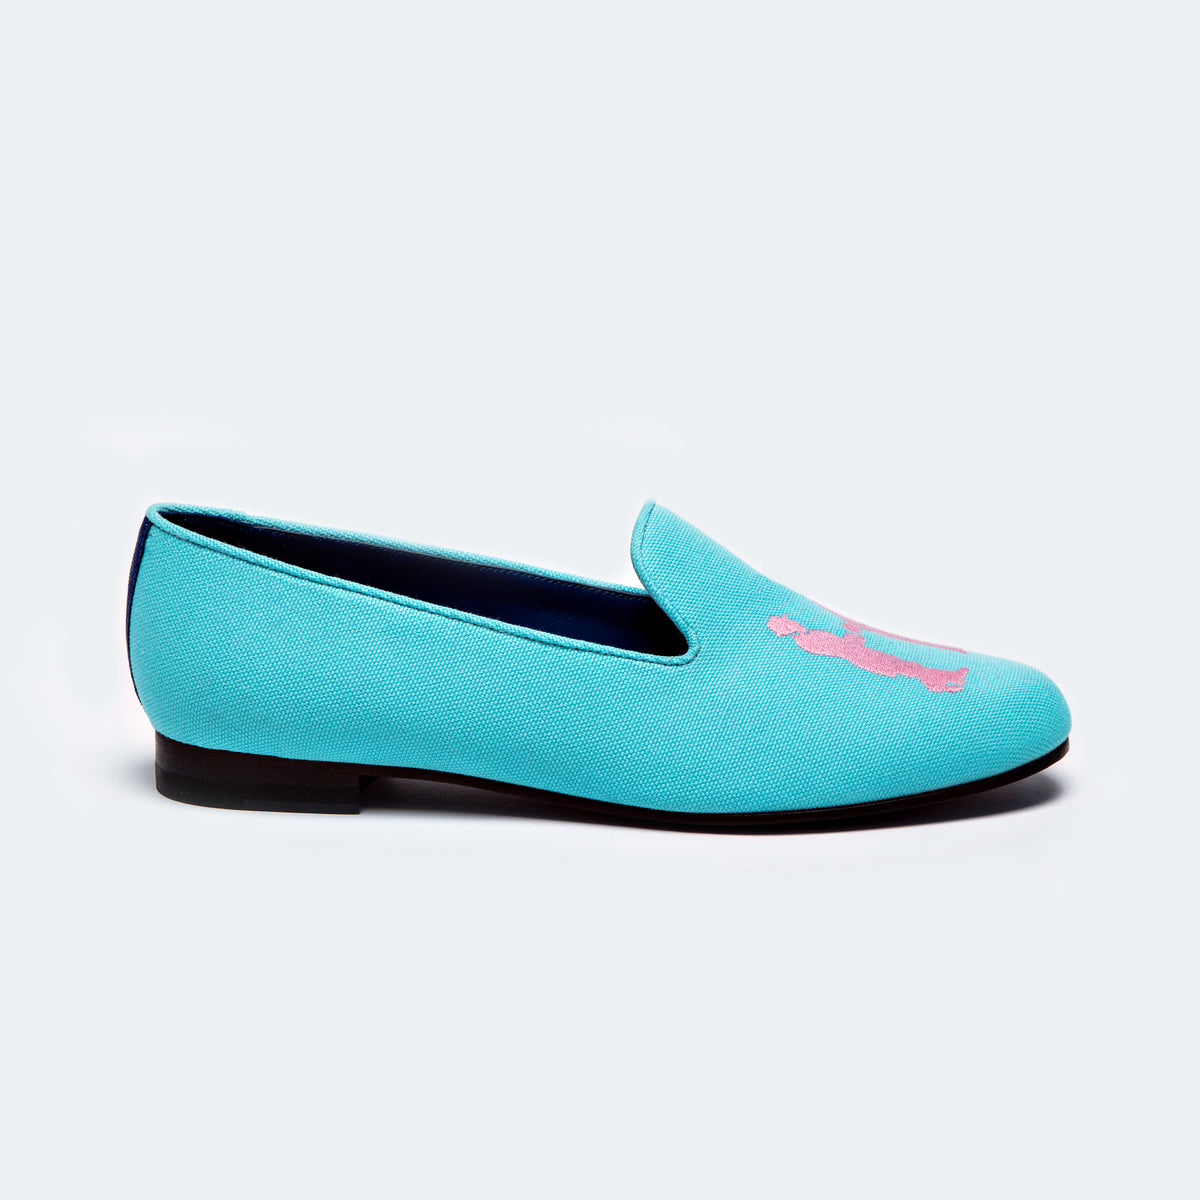 Slipper in Aqua with Pink